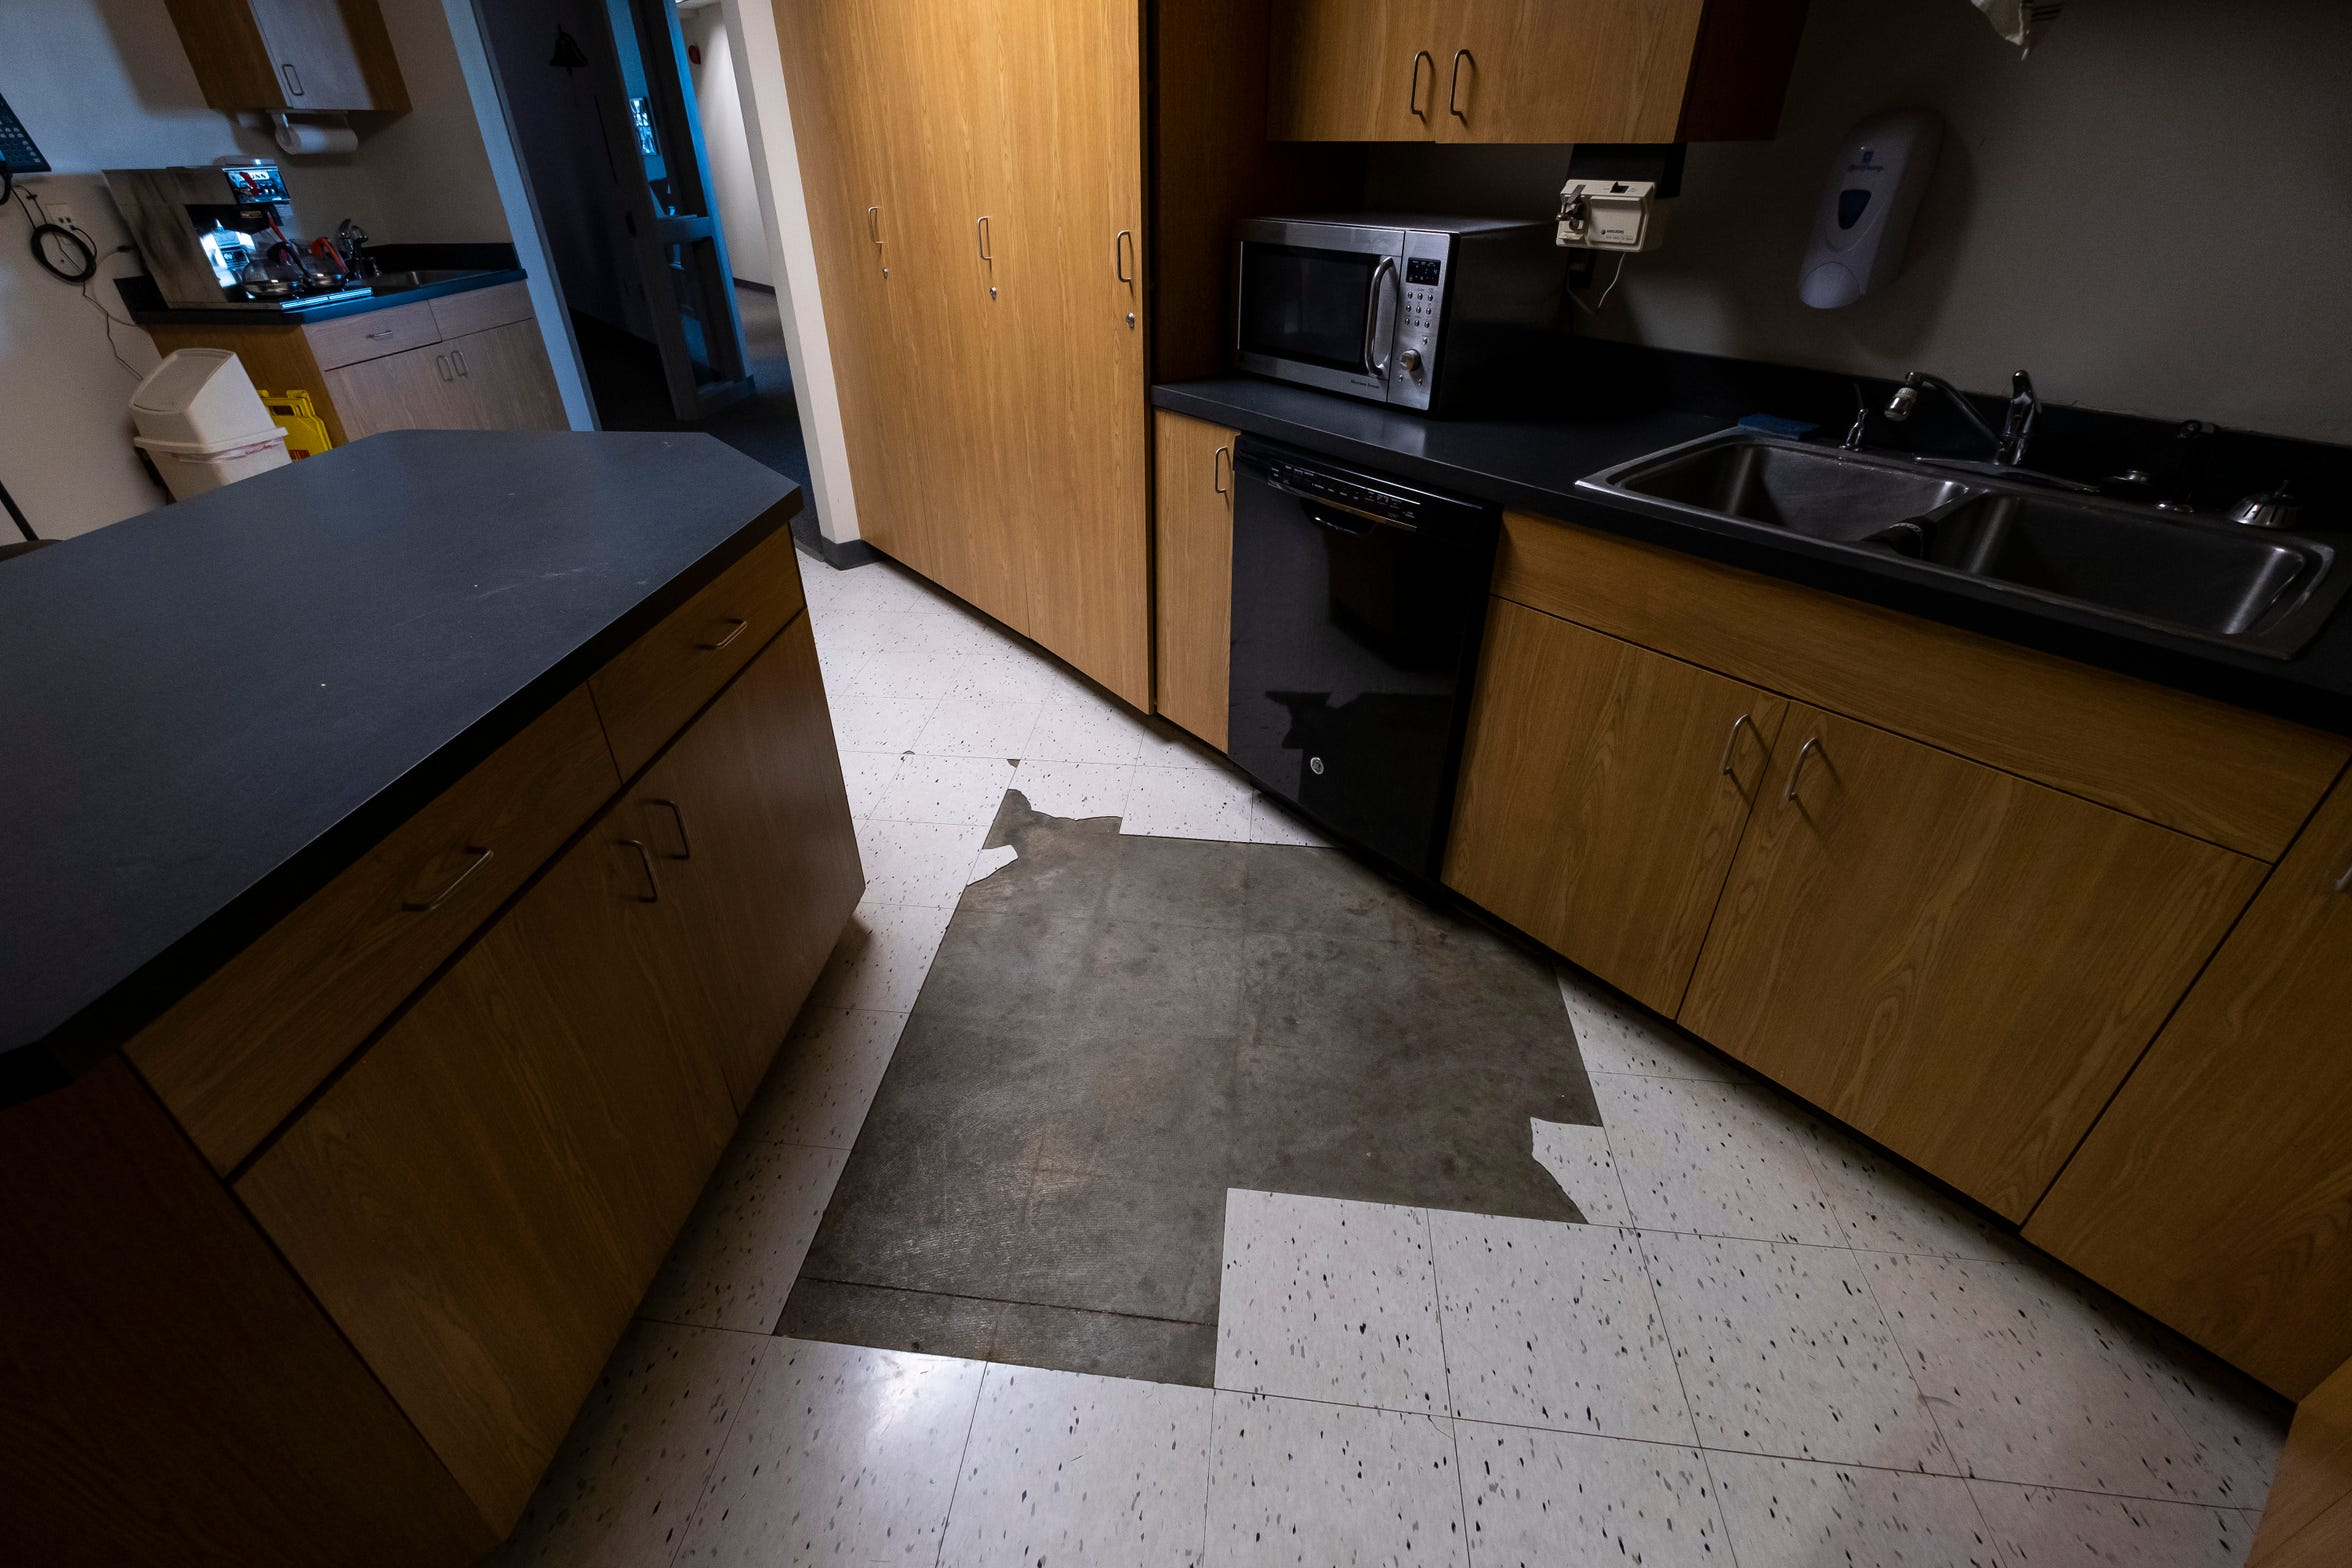 Floor tiles were removed in the Marysville Public Safety building due to moisture getting under them.